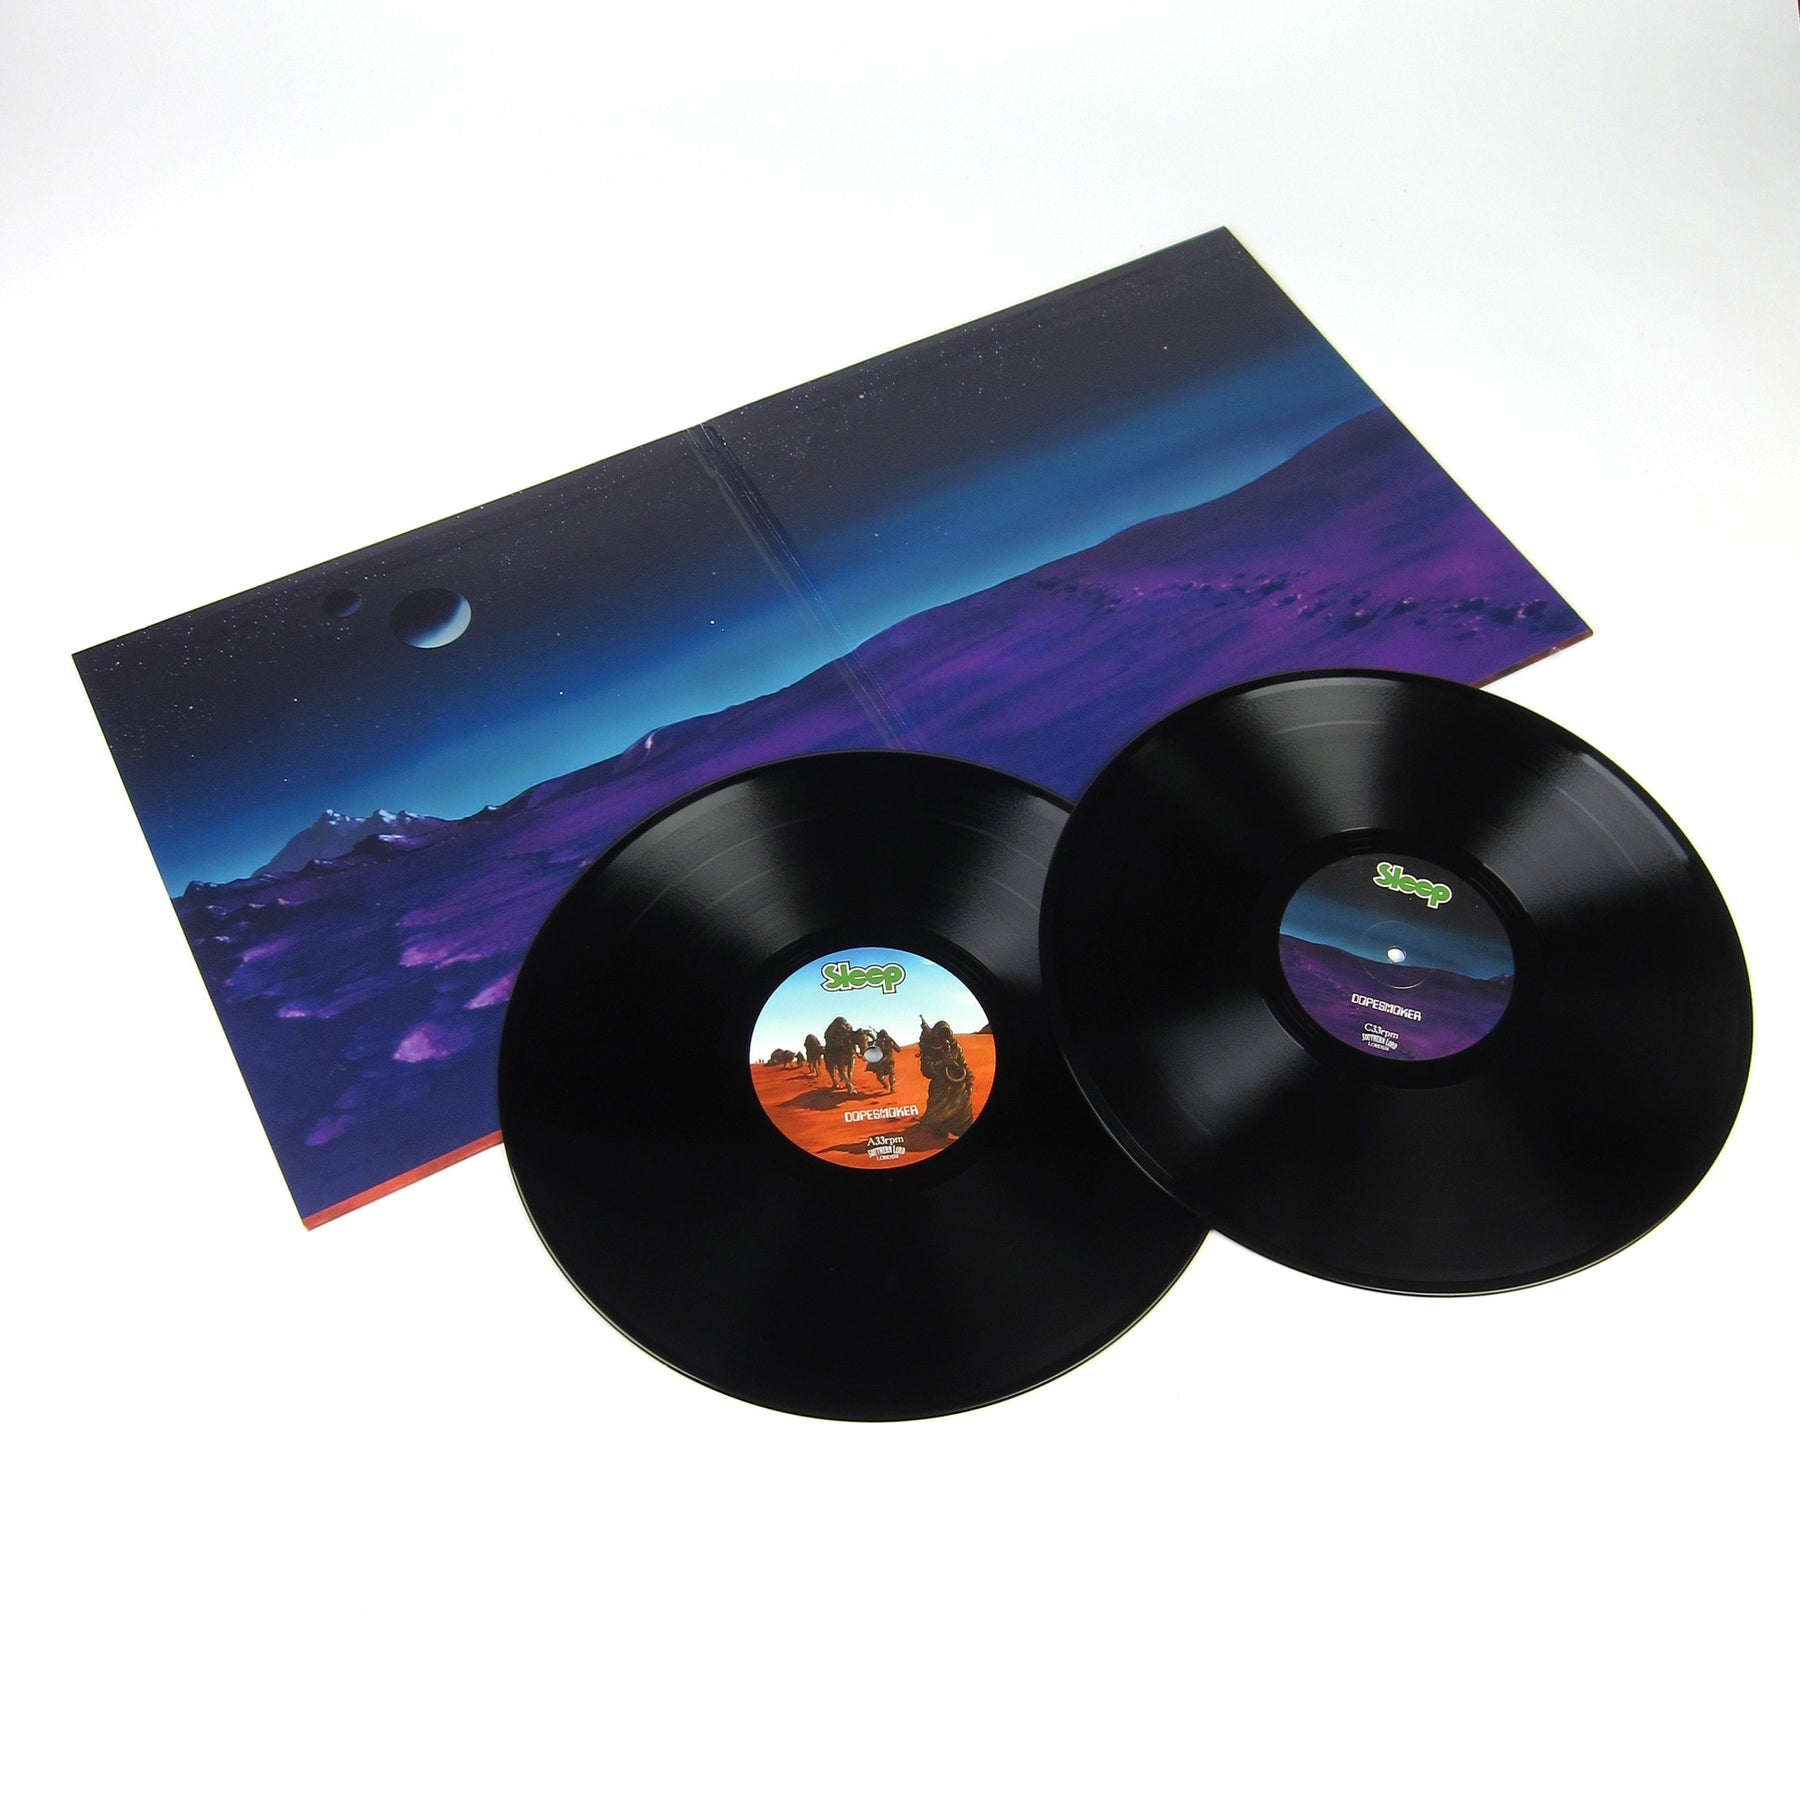 Sleep Dopesmoker Vinyl 2LP